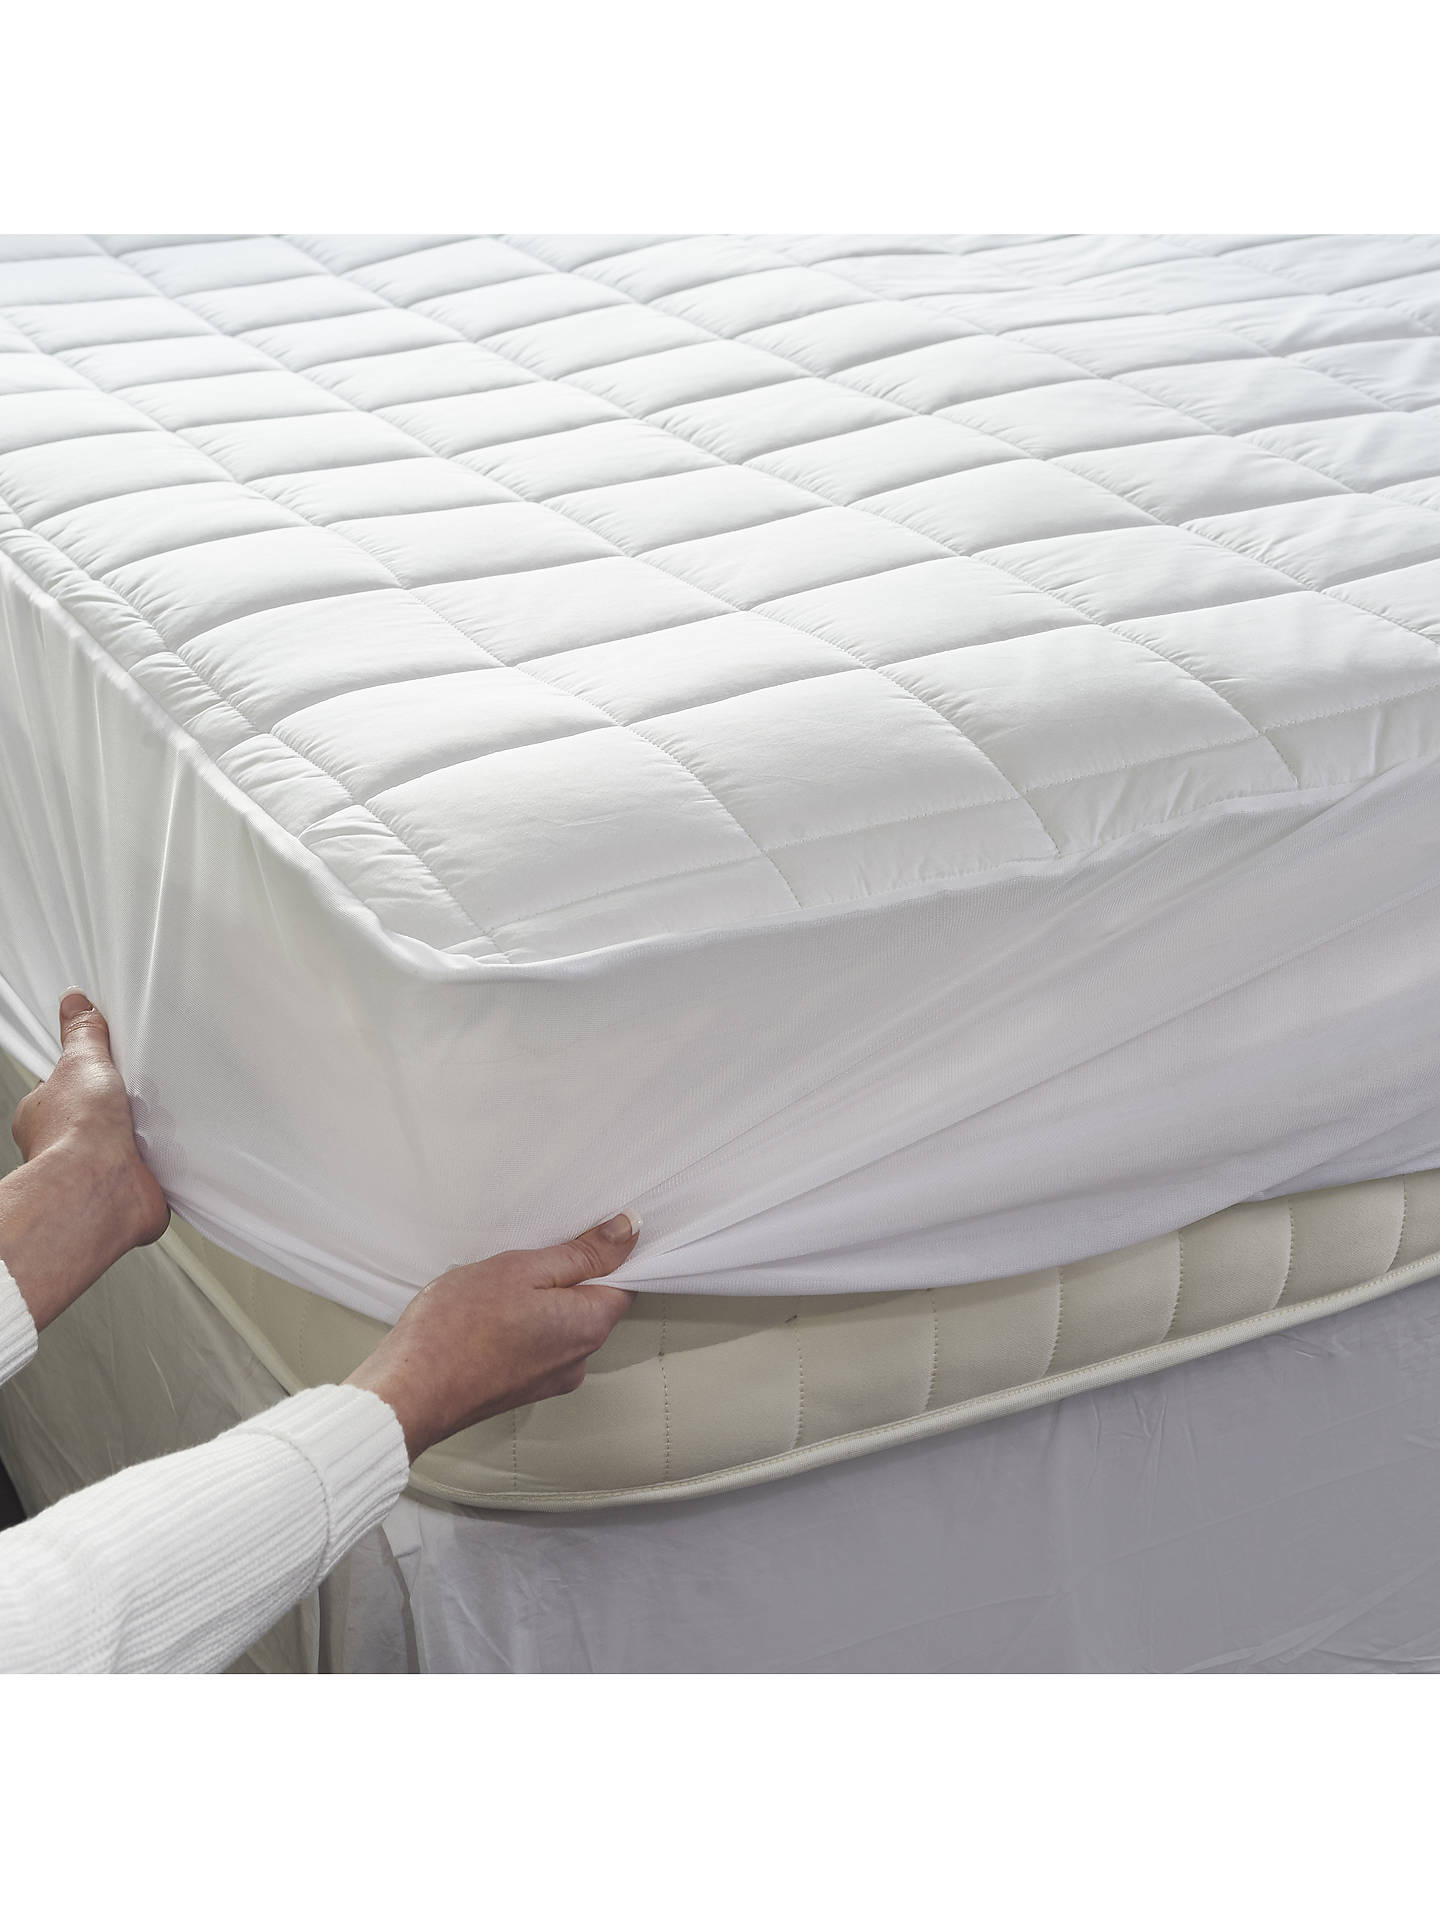 Dreamland Dual Control Cotton Heated Mattress Protector at